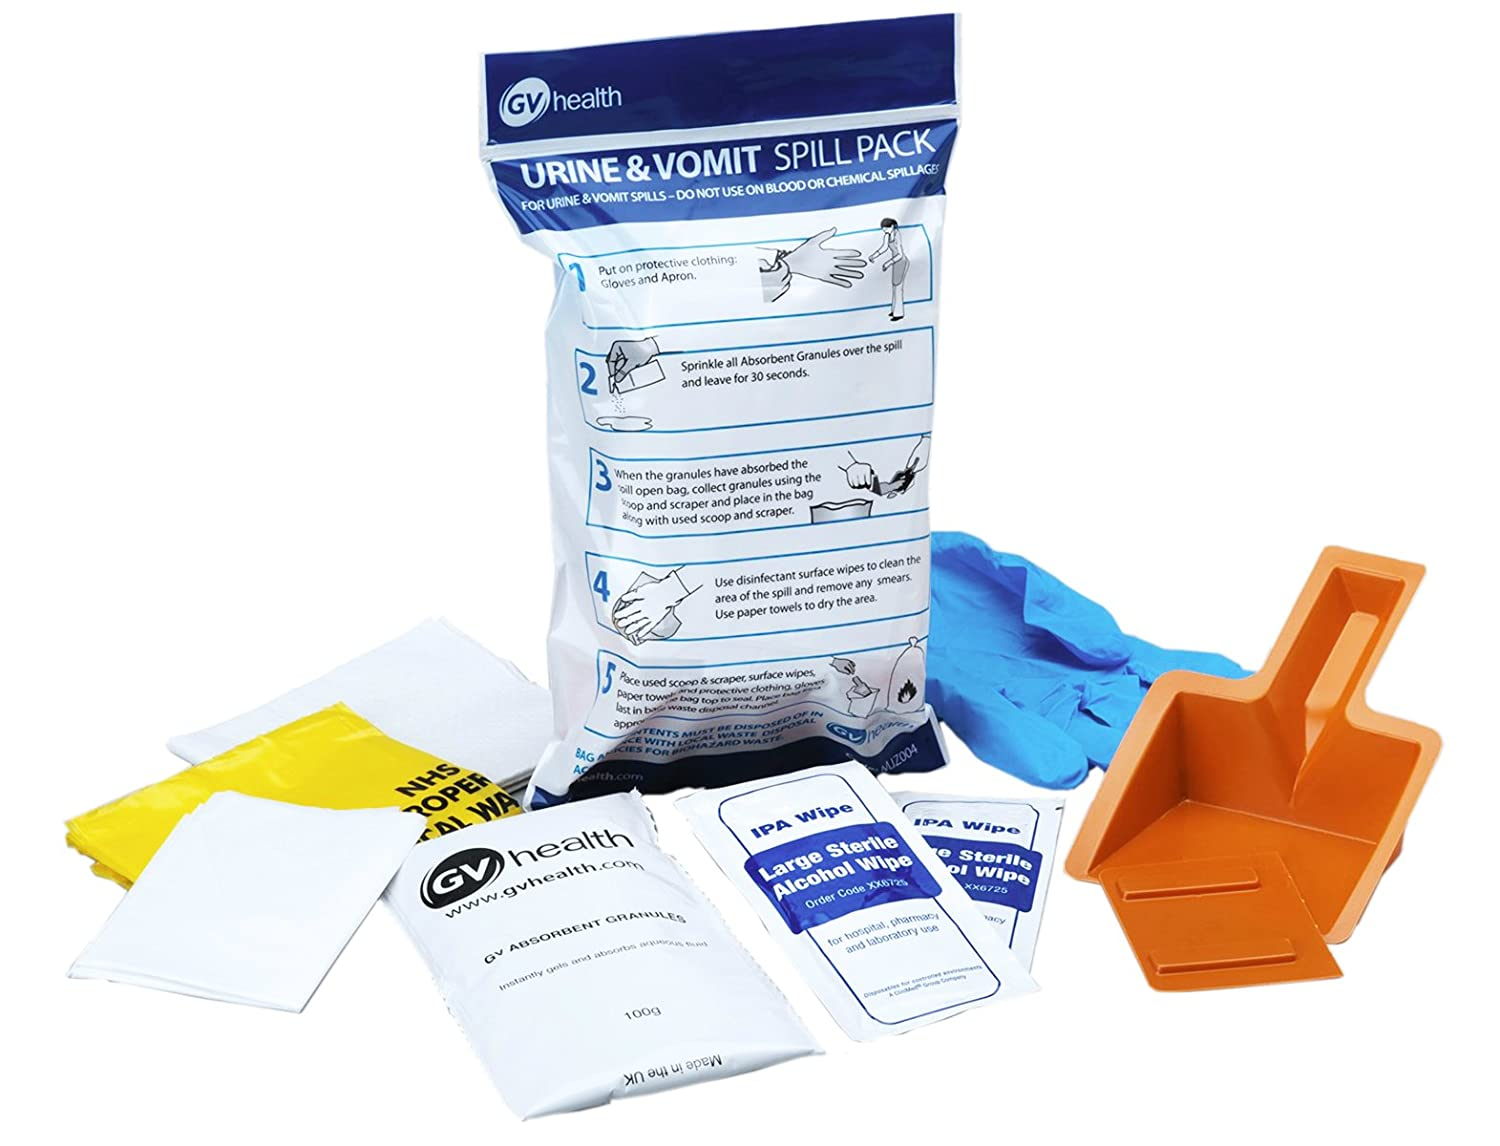 Blue apron drug test - Gv Health Vomit And Urine Spill Pack Amazon Co Uk Health Personal Care